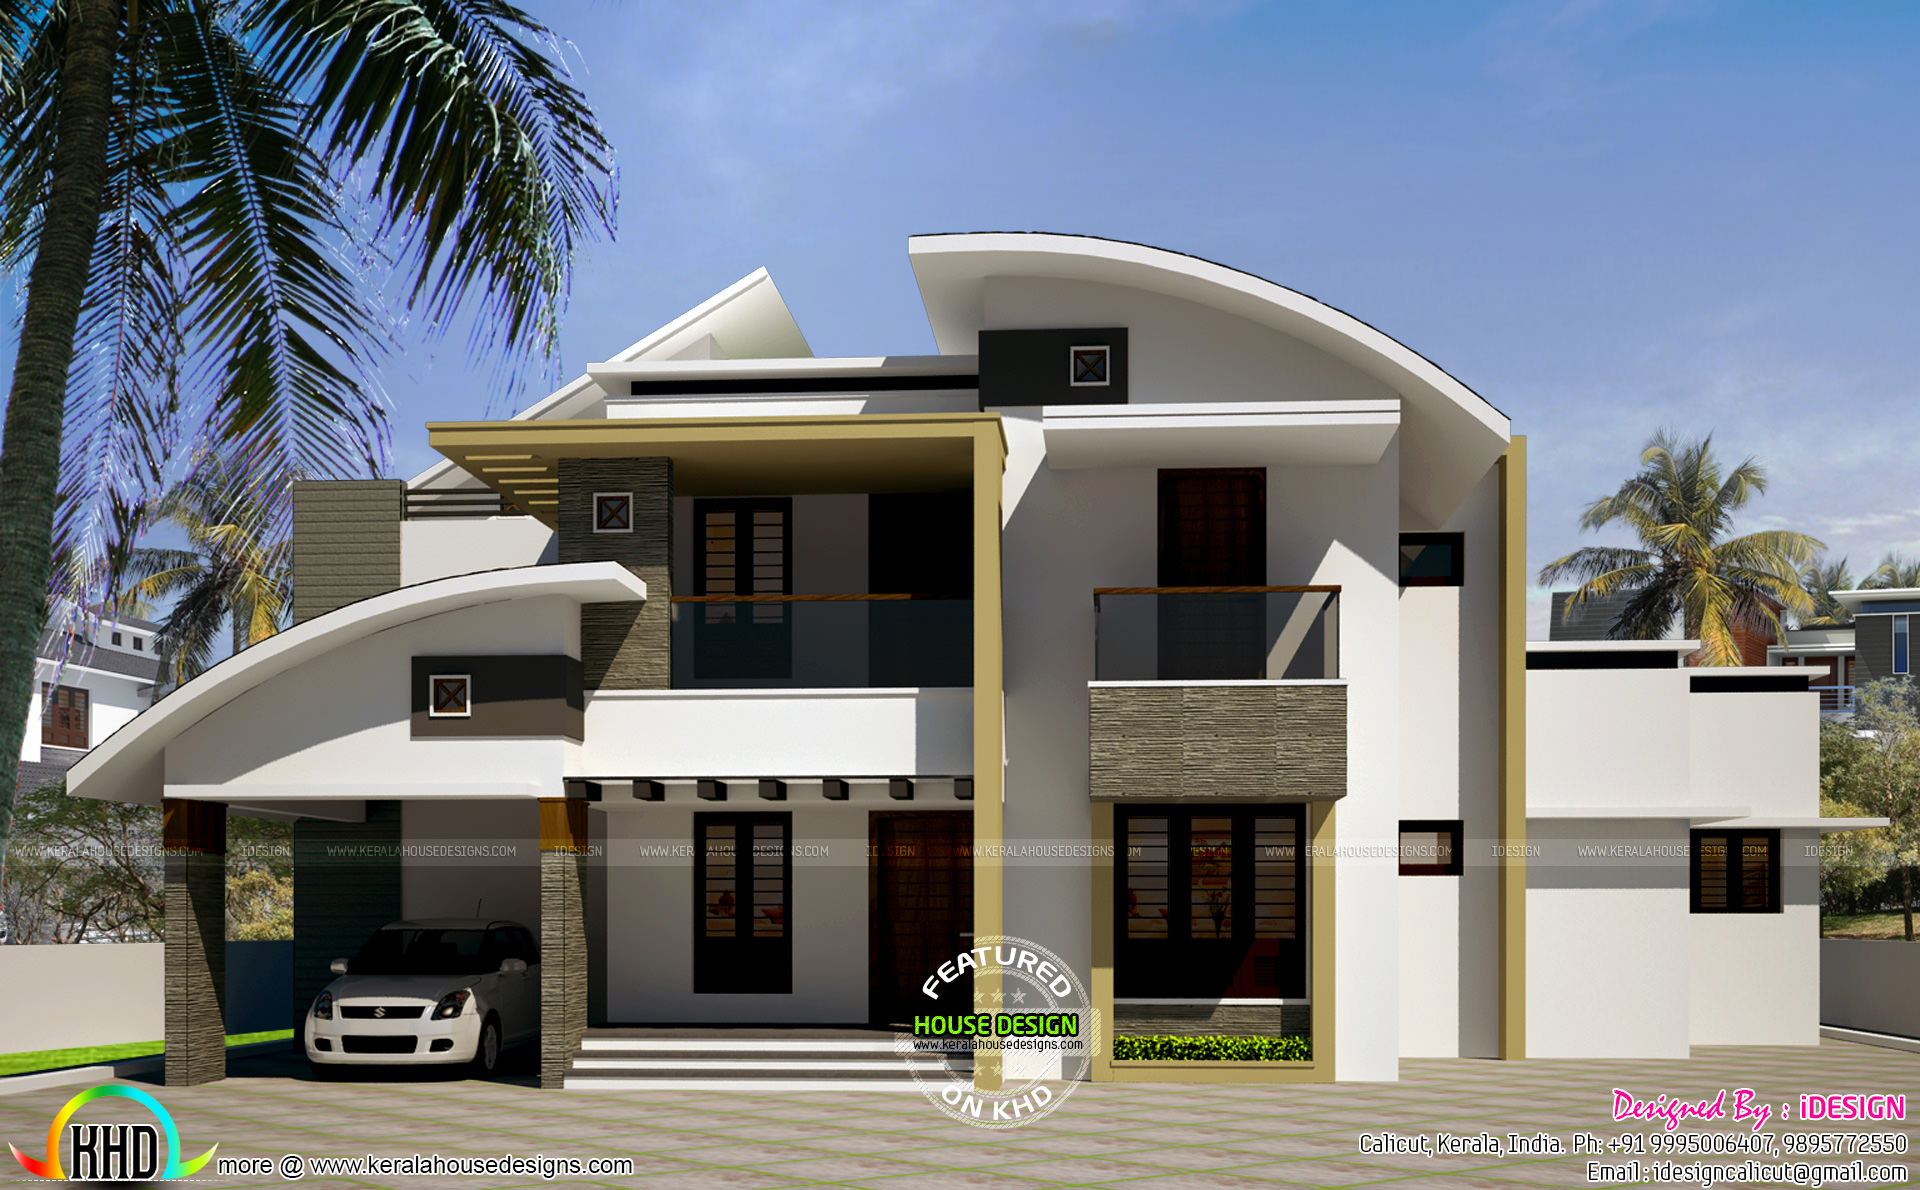 8 Bedroom House Floor Plans January 2017 Kerala Home Design And Floor Plans